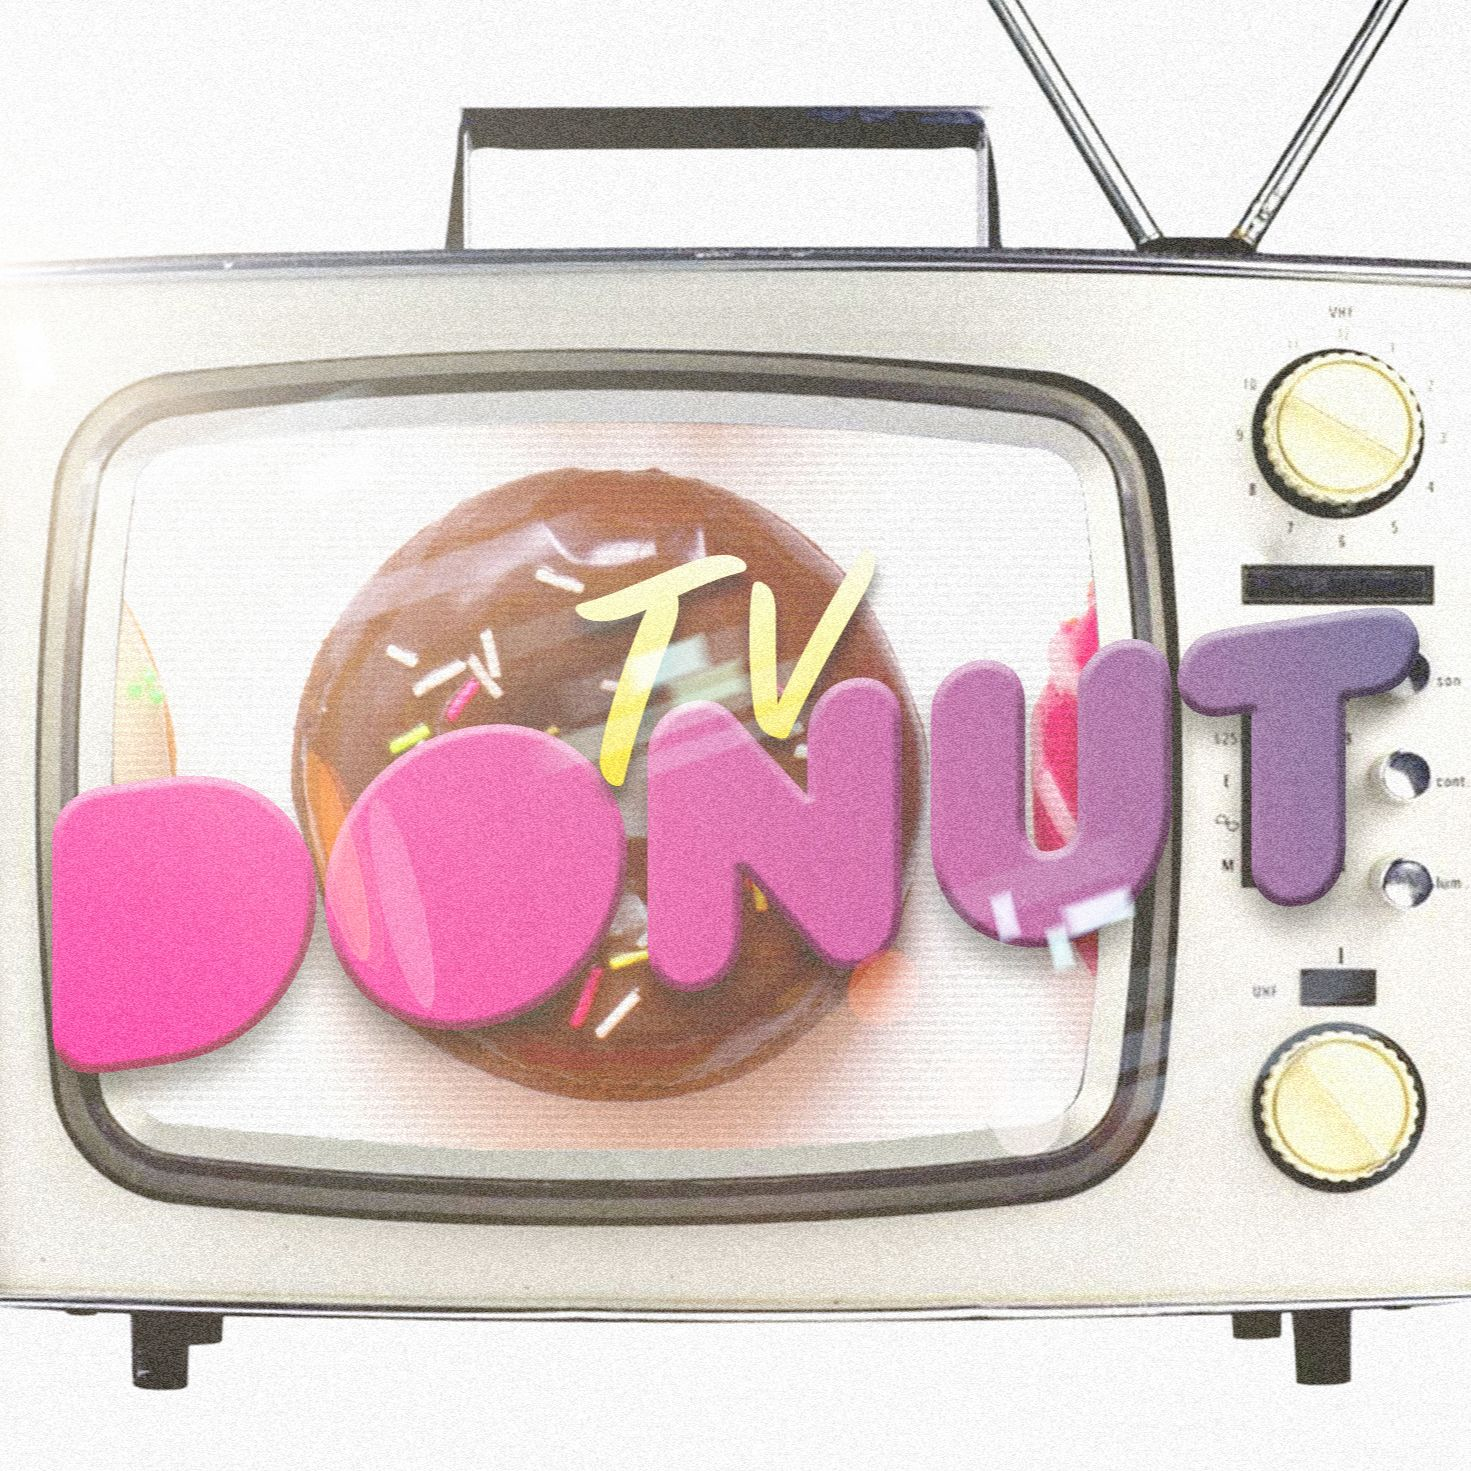 TV Donut - Episode 5.13 - The Young Riders